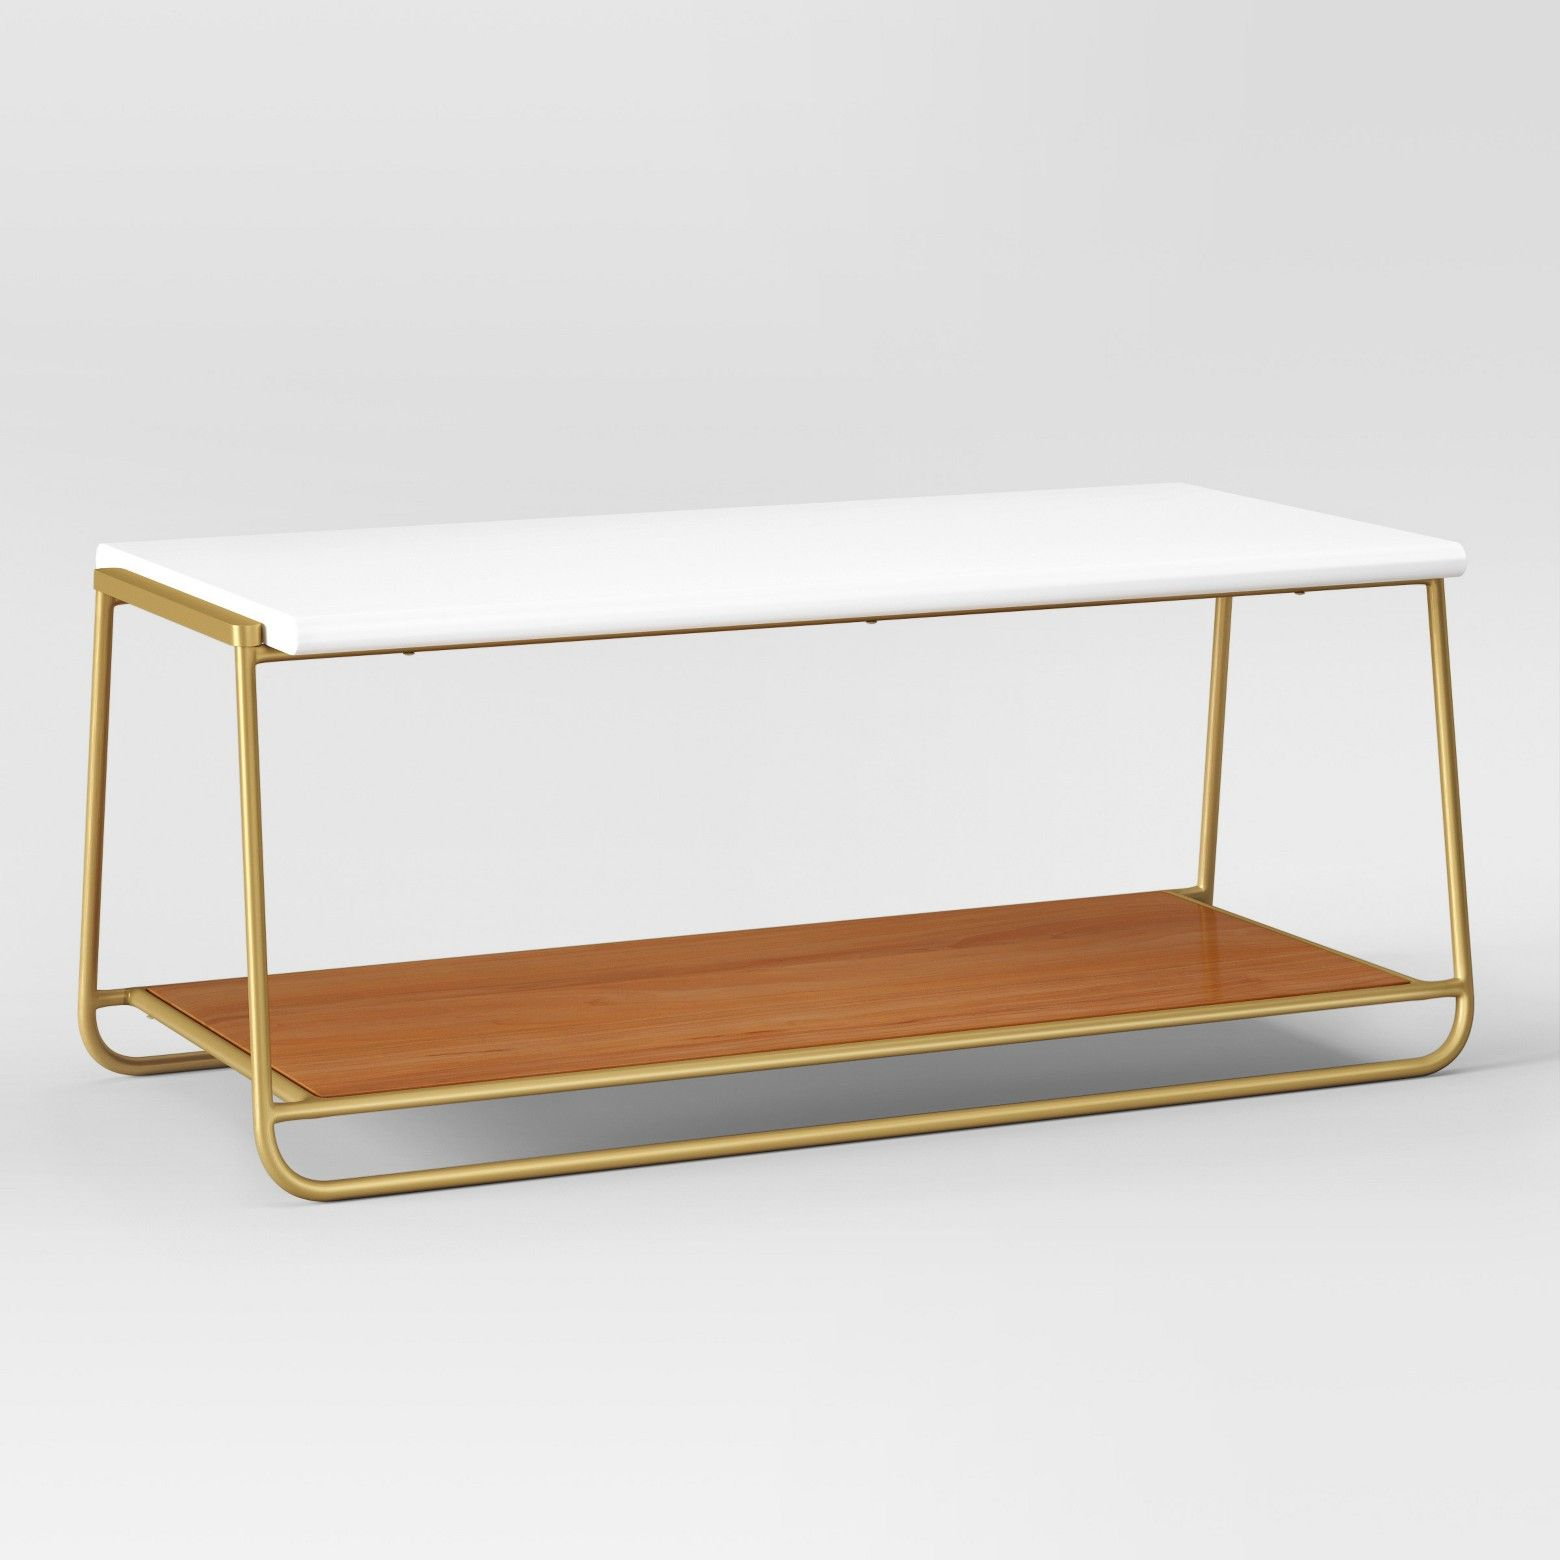 Sayer Coffee Table White Project White Coffee Tables Wood - White coffee table with gold legs